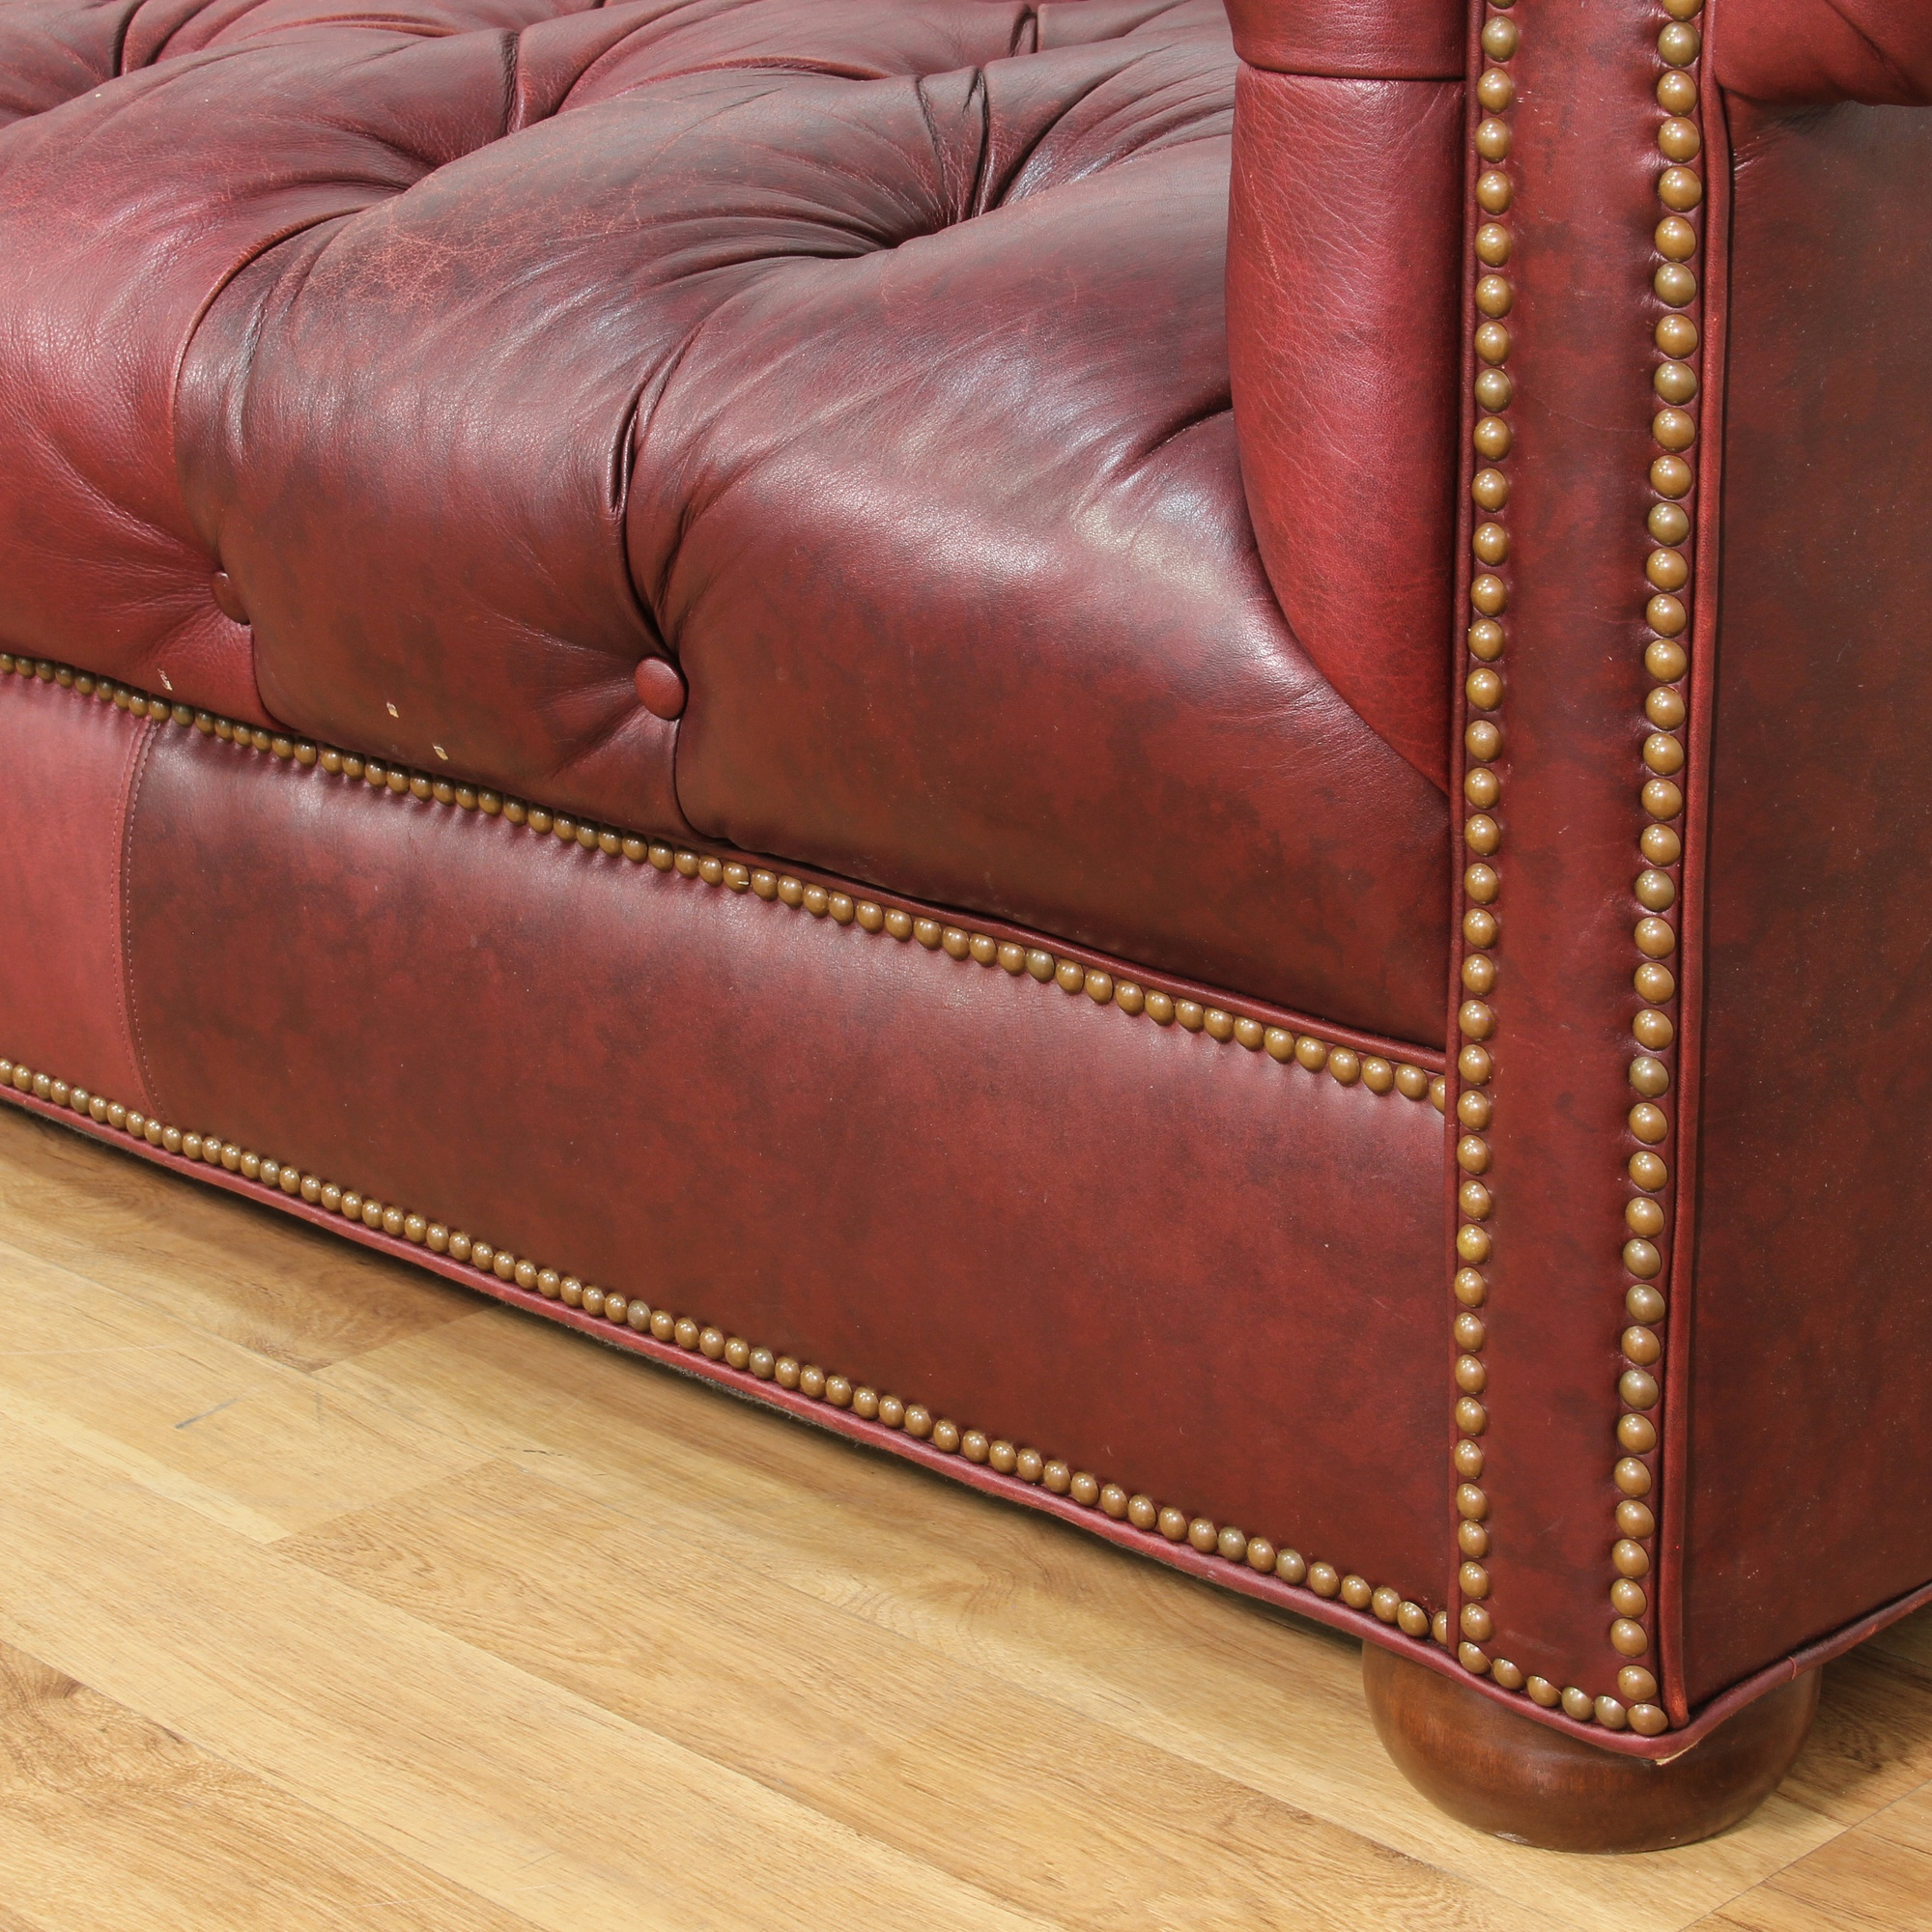 Leather burgundy tufted sofa loveseat vintage furniture for Traditional tufted leather sofa